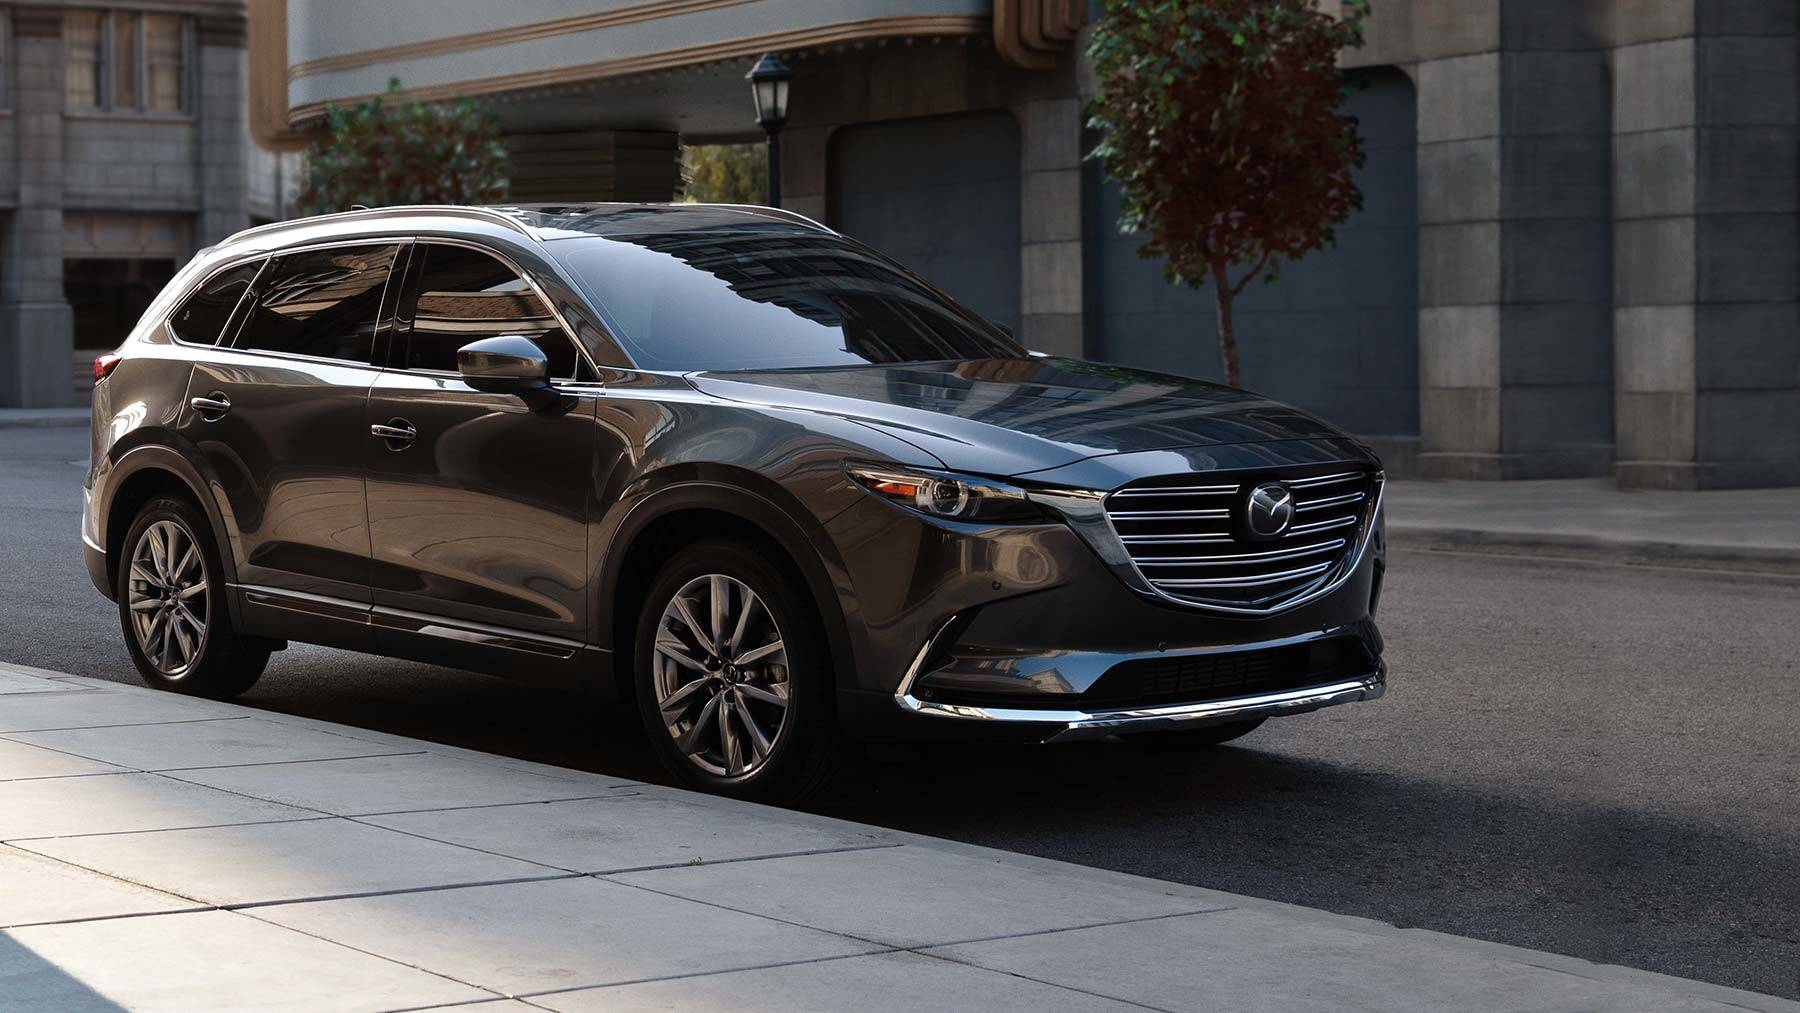 2019 Mazda CX-9 for Sale in San Antonio, TX